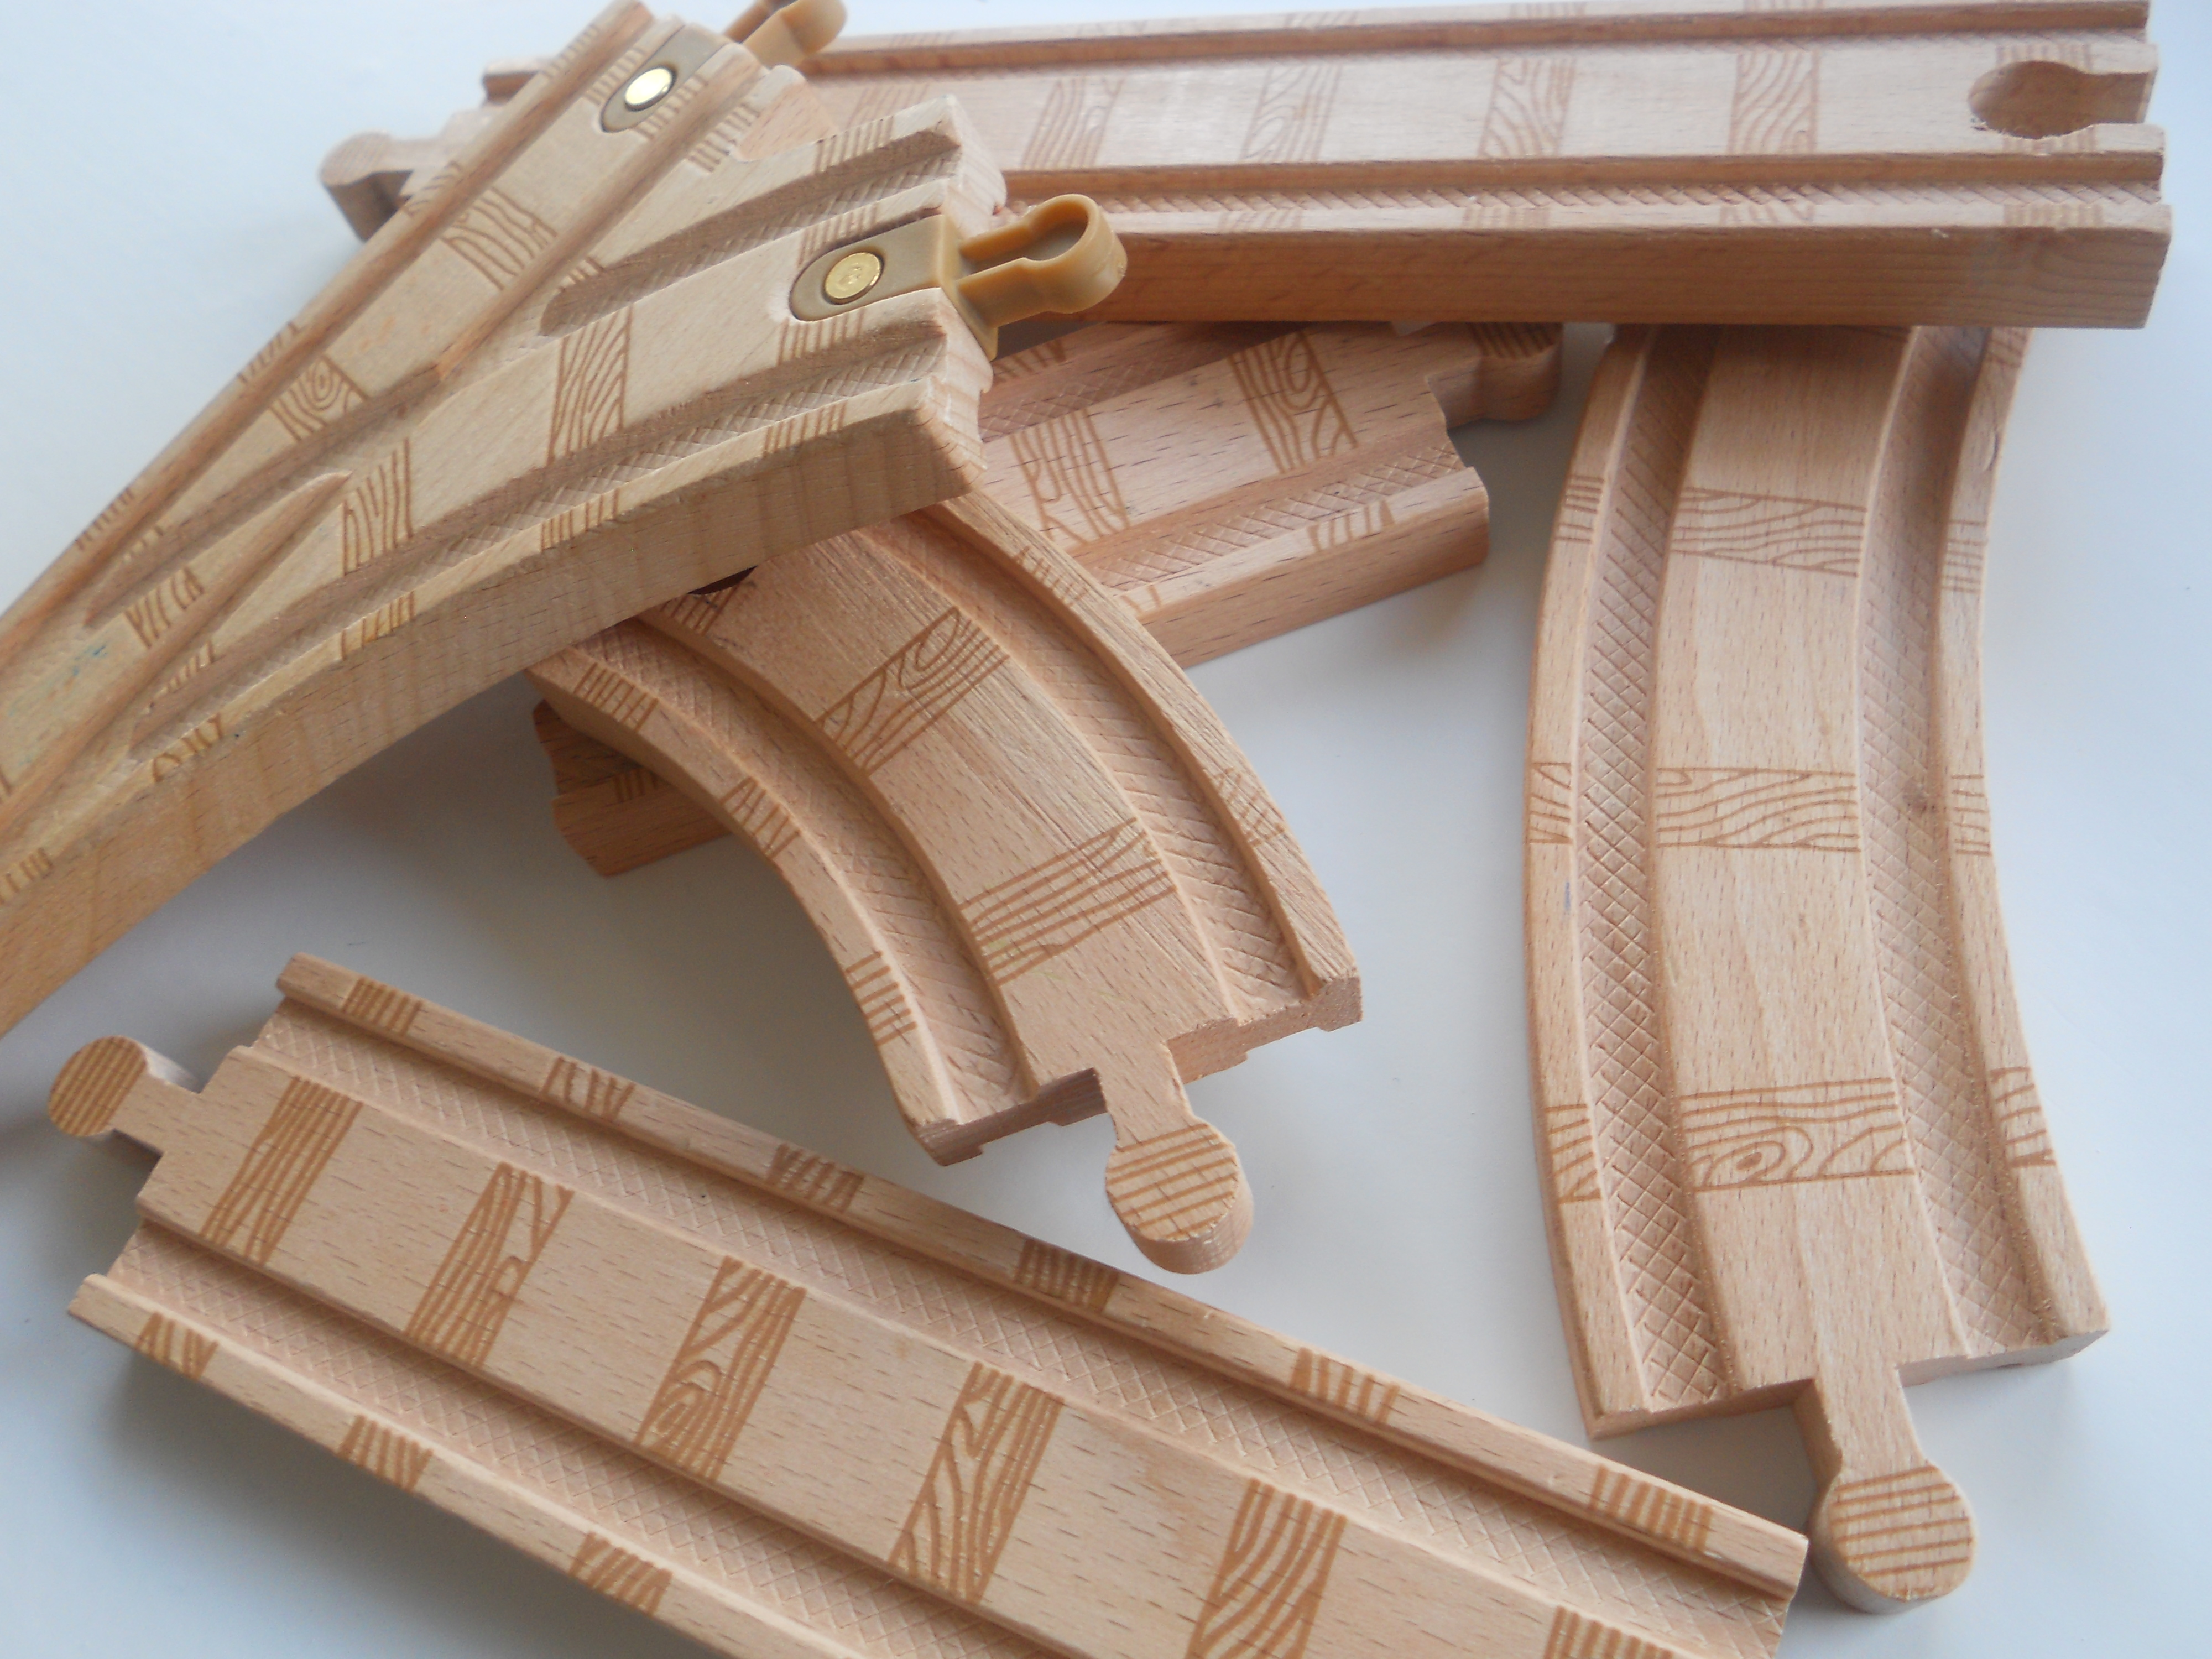 Wooden Train Tracks Wooden Train Tracks These Items Have Just Been Ravenated